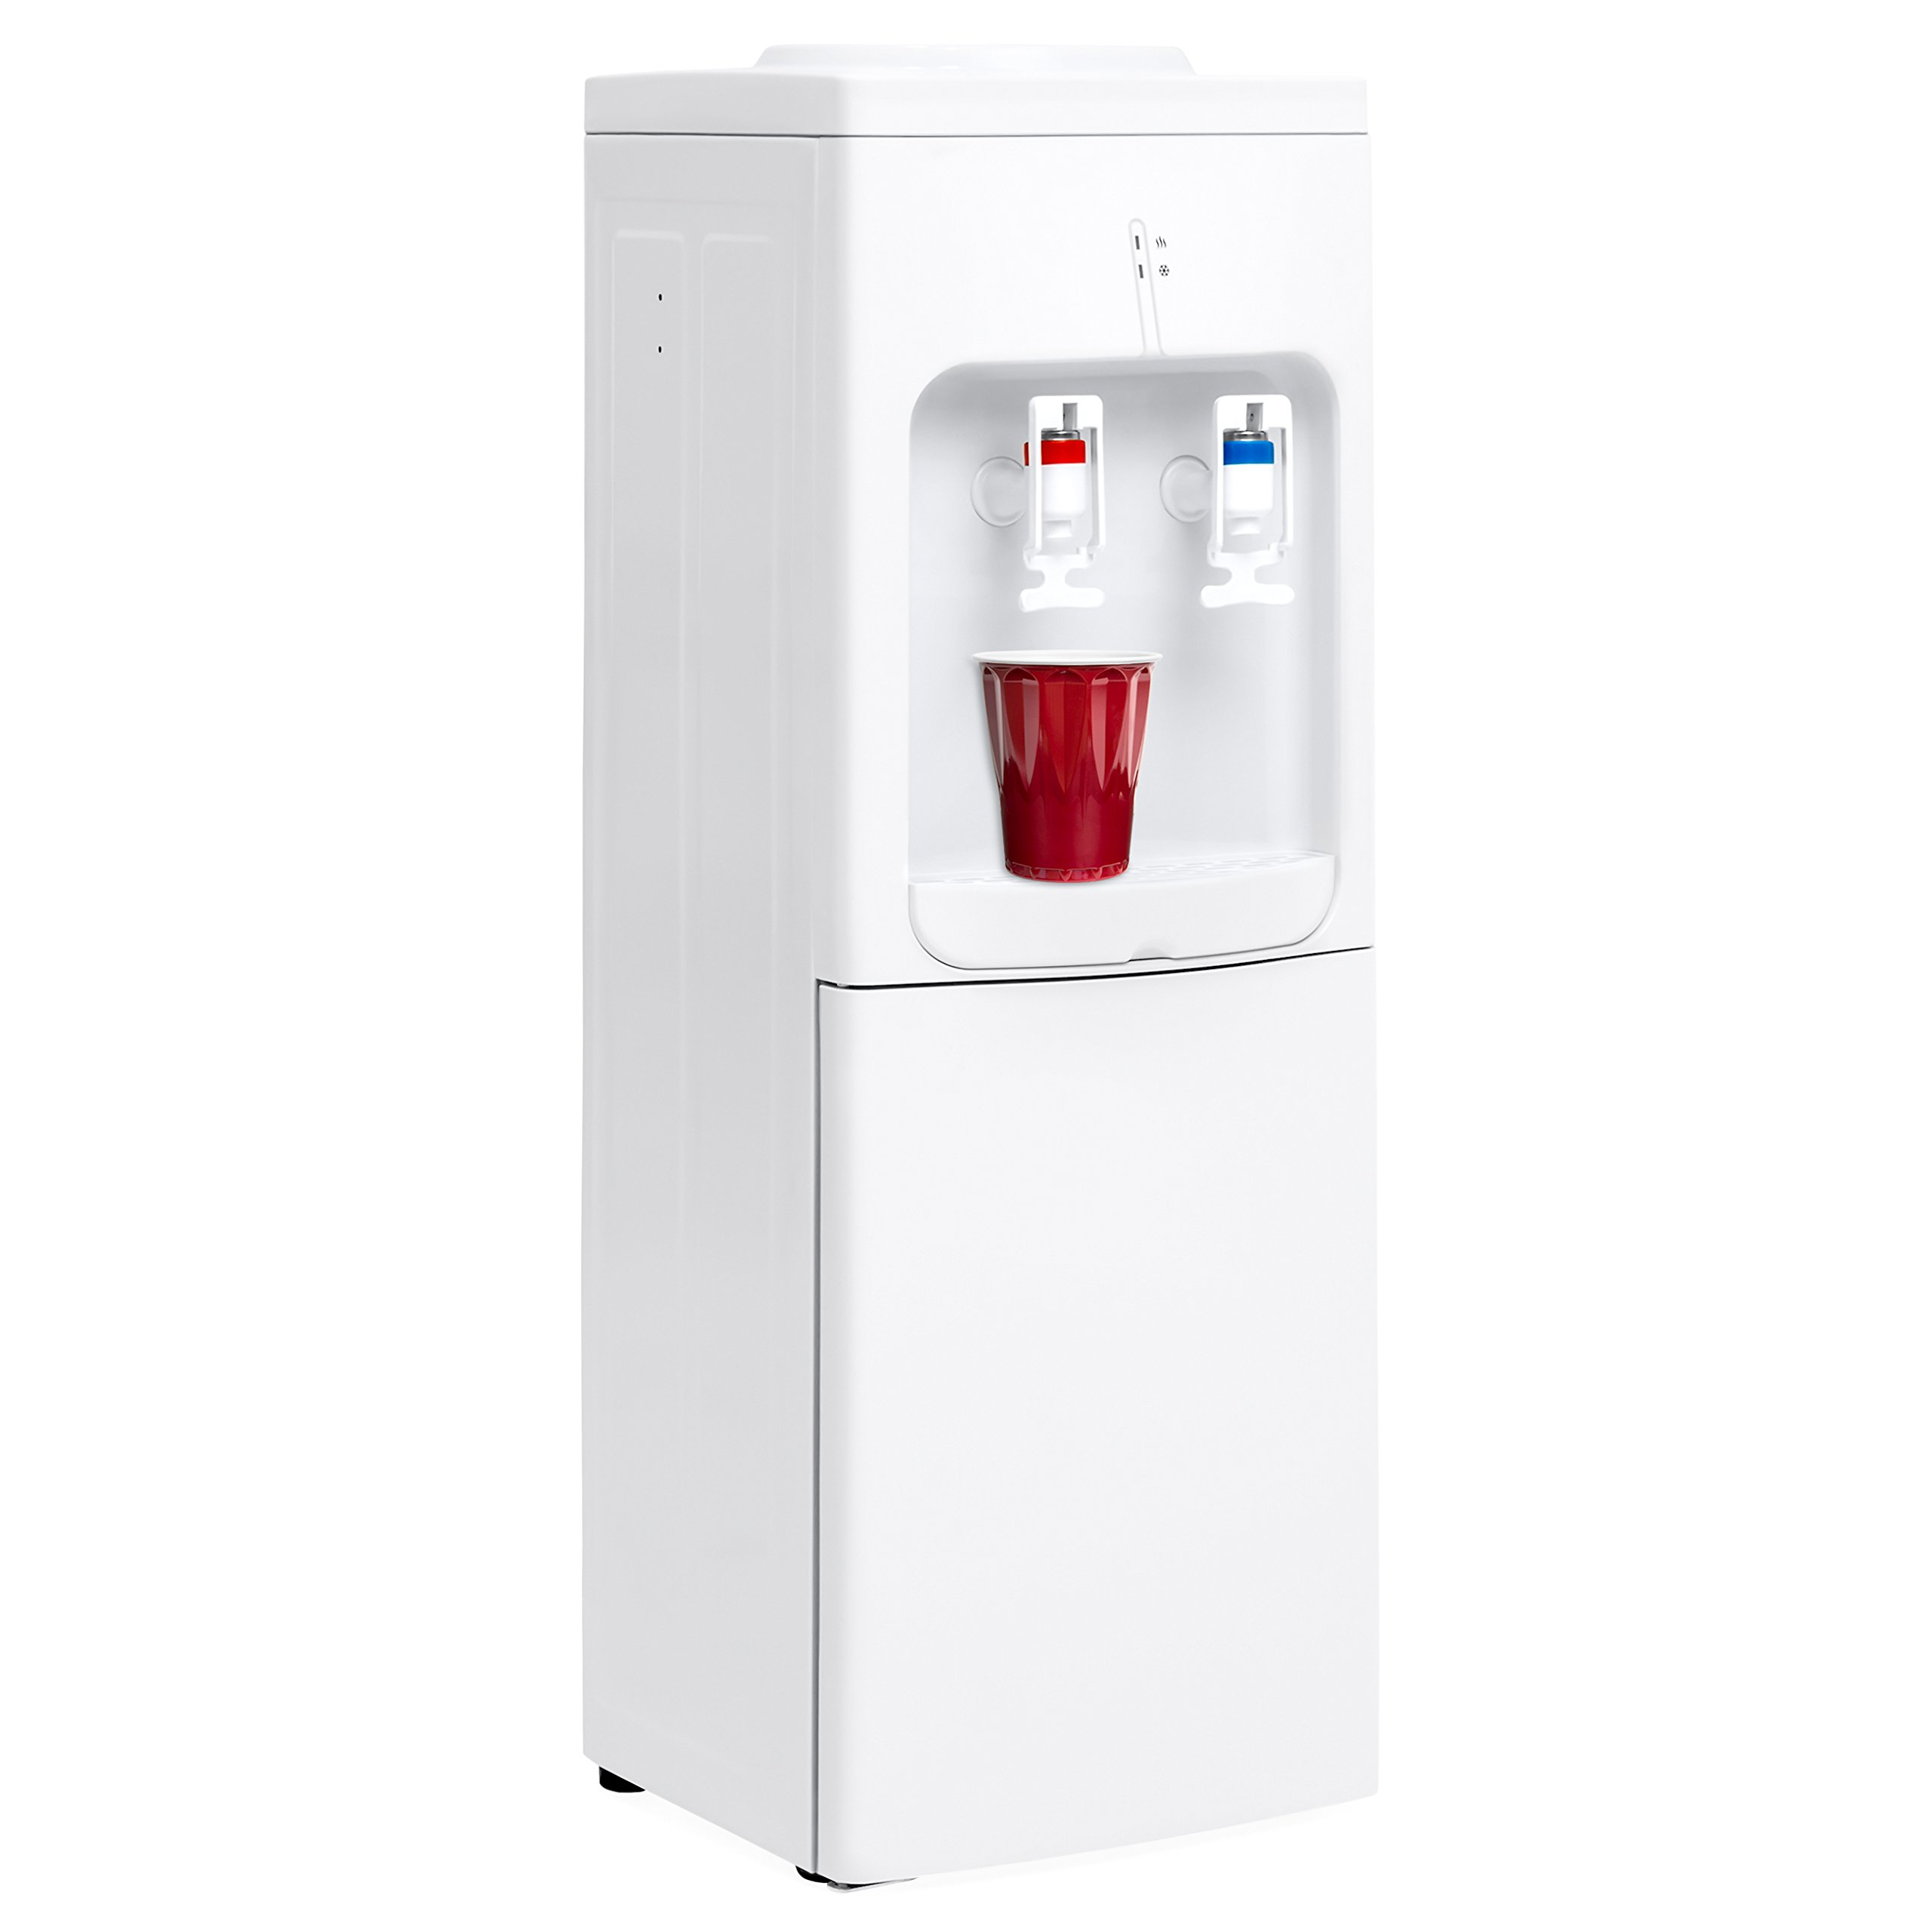 Best Choice Products 5-Gallon Top Loading Bottle Hot Cold Water Cooler Dispenser w/ 2 Safety Switches, Storage Cabinet, Durable Frame - White